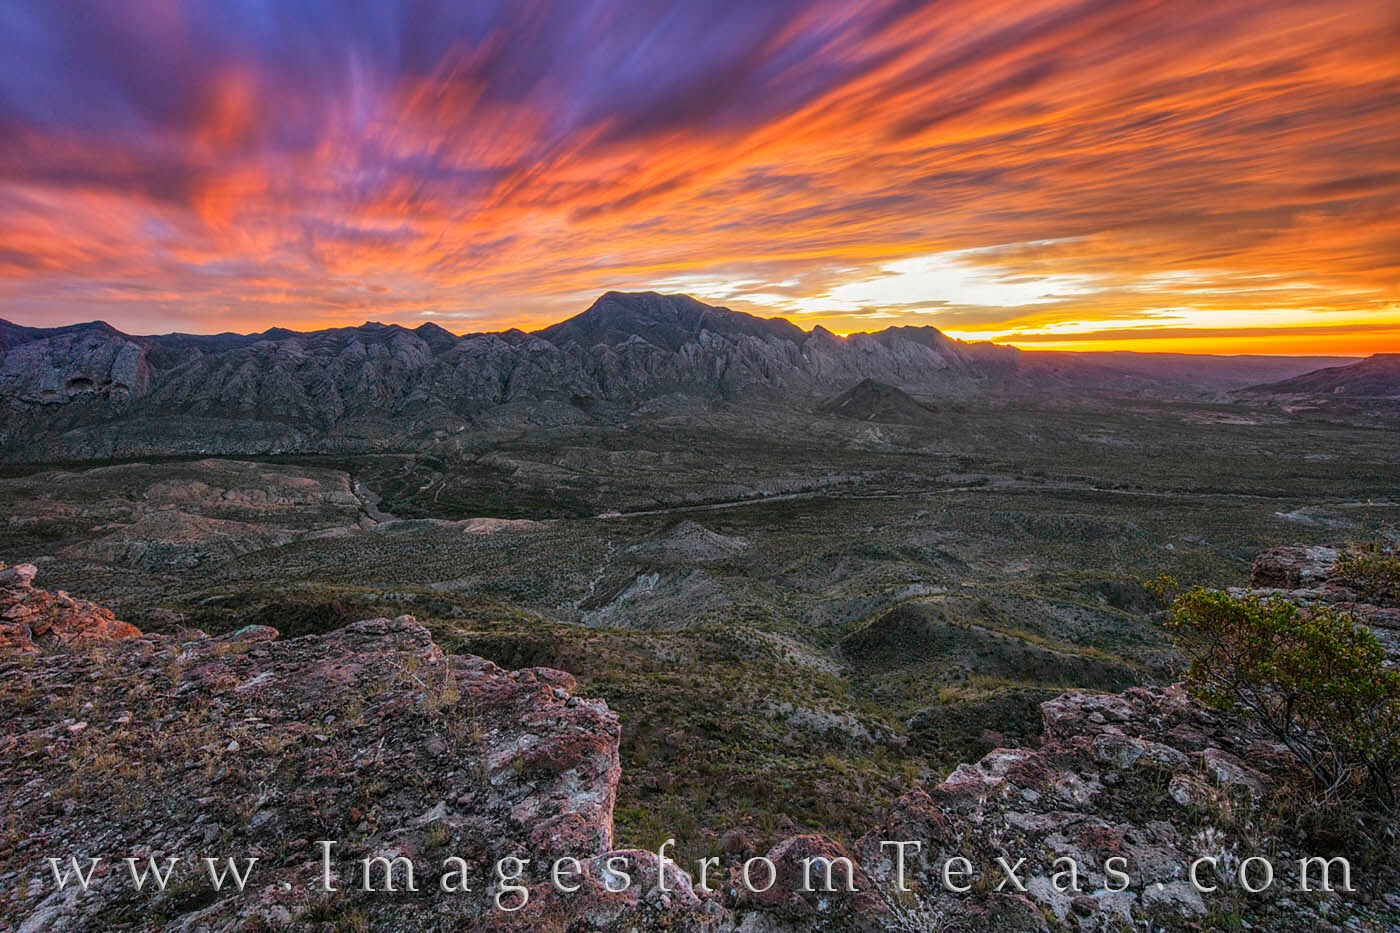 solitario, fresno canyon, big bend ranch, west texas, hiking, exploring, big bend, desert, sunrise, clouds, photo